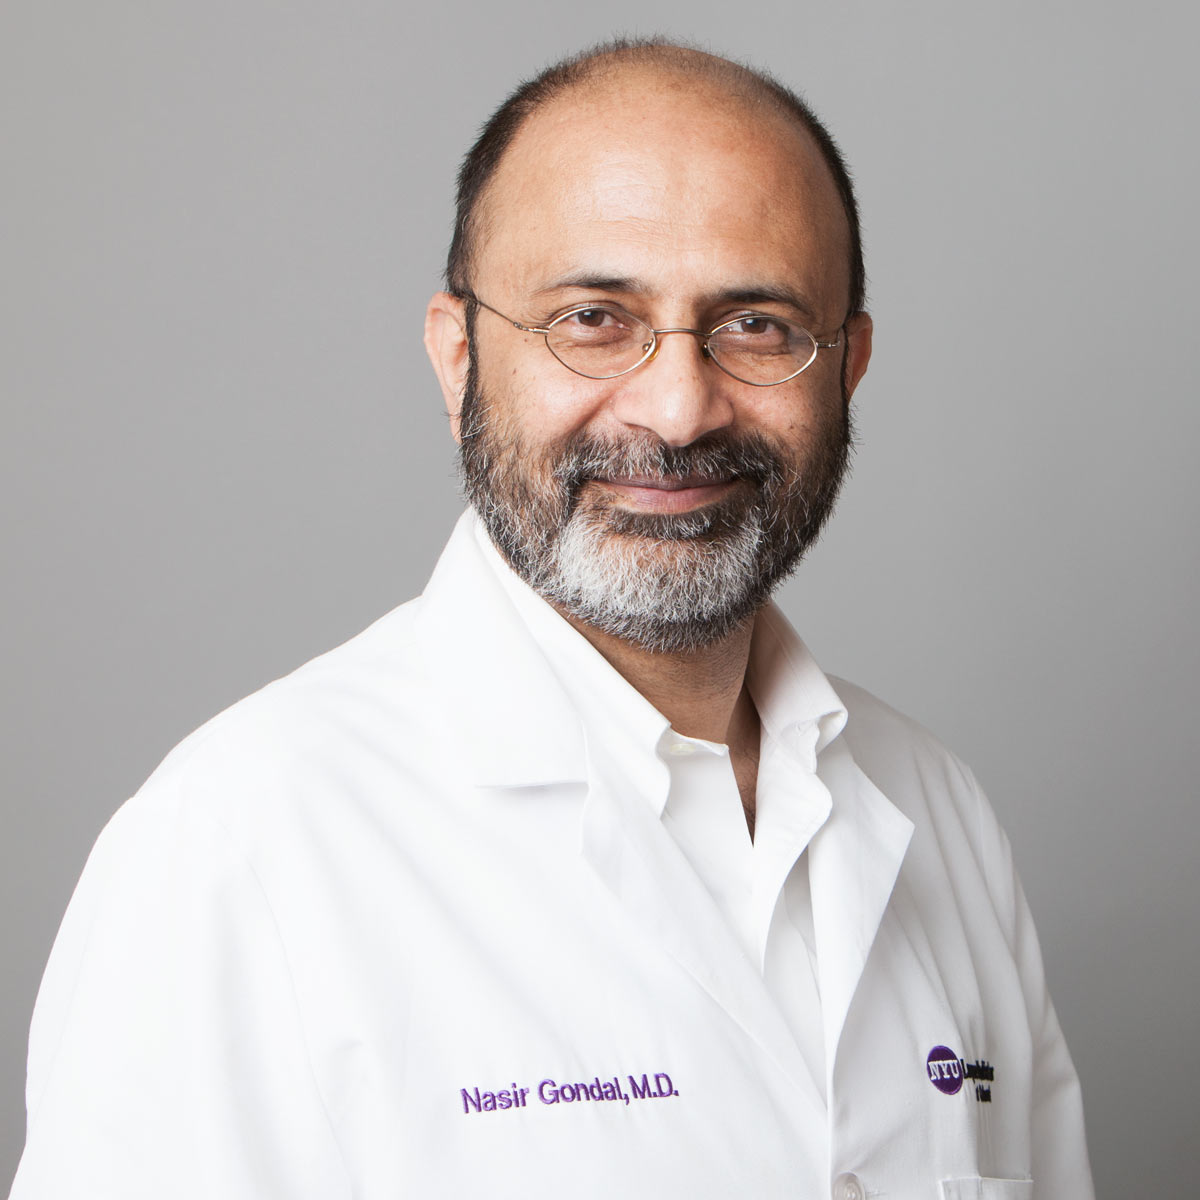 Nasir Gondal at [NYU Langone Health]